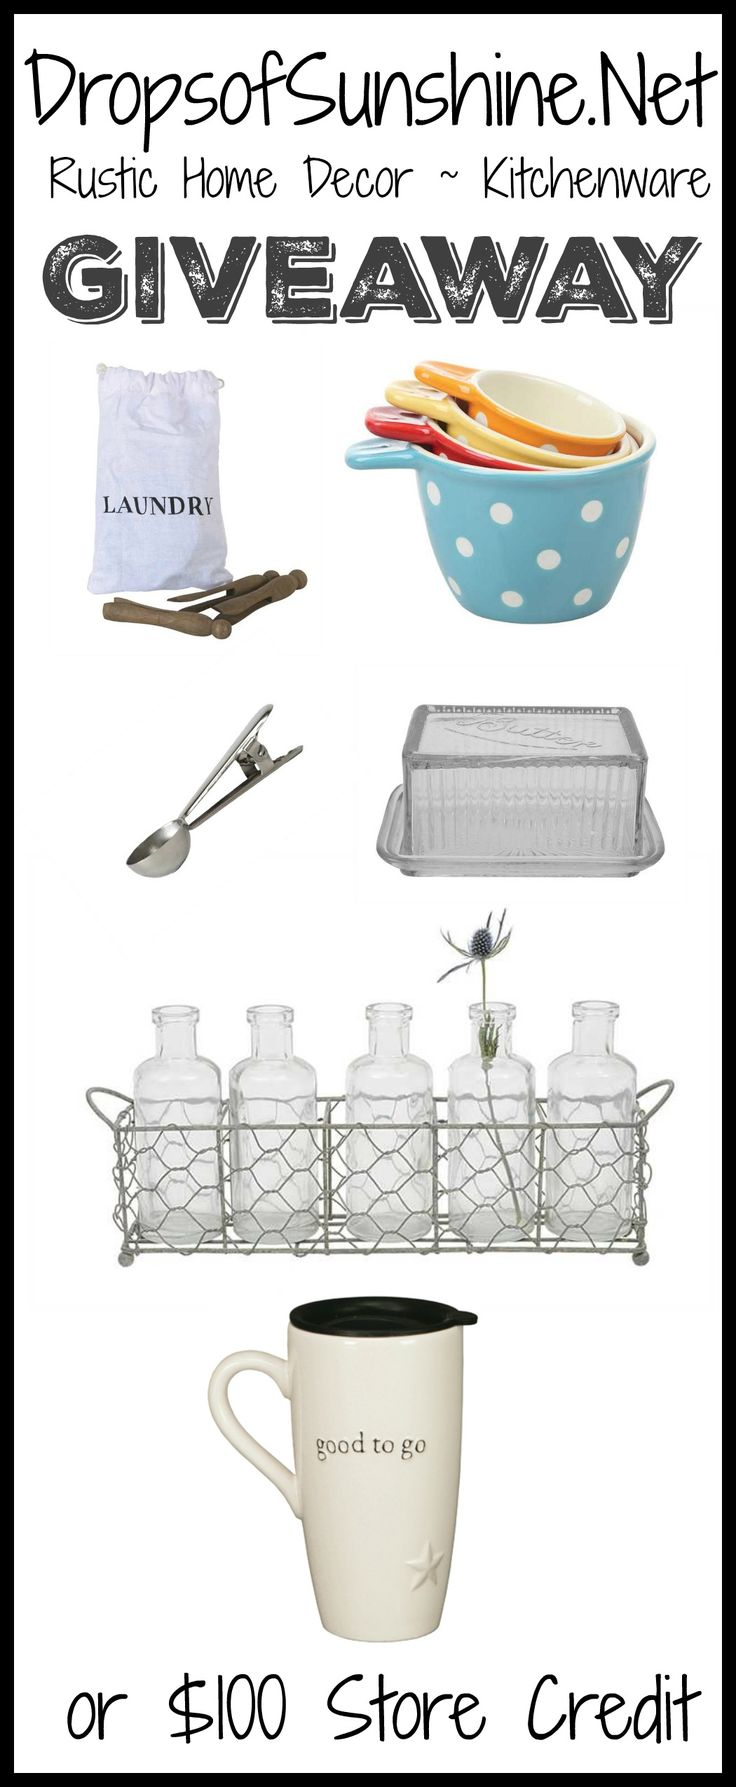 Giveaway to Drops of Sunshine online boutique. Home decor and kitchen accessories with a rustic twist that make beautiful gifts!